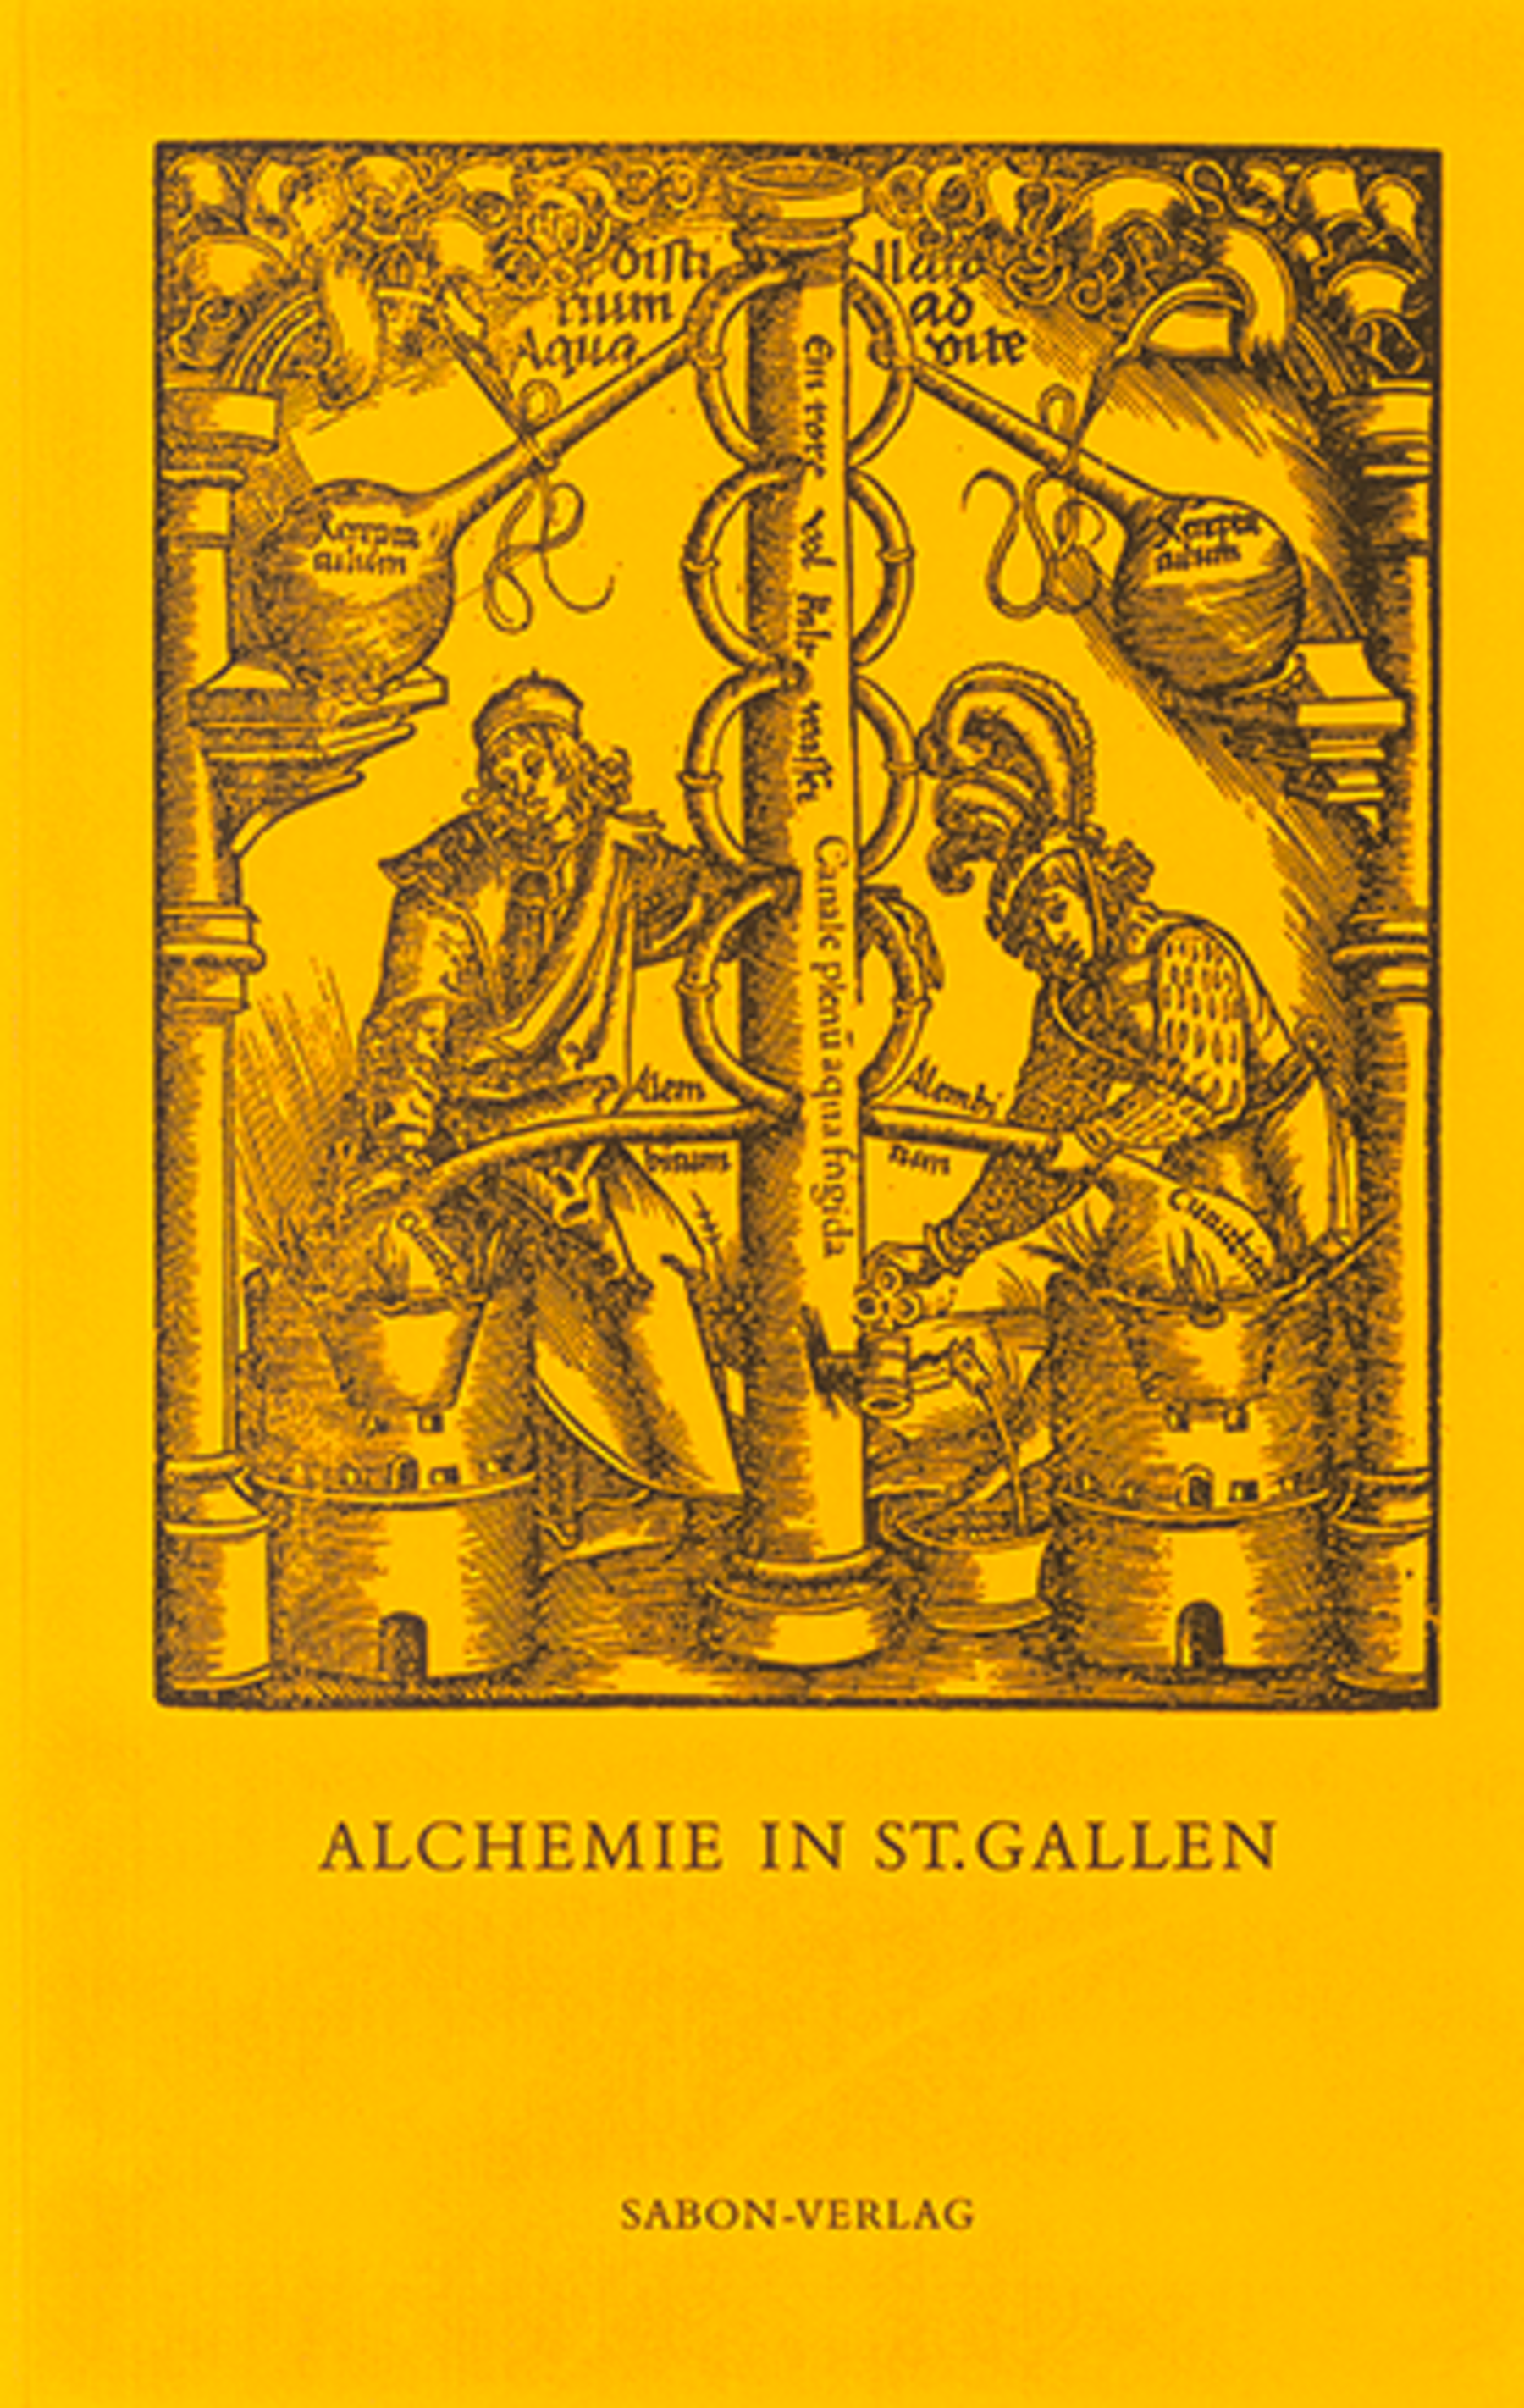 Alchemie in St. Gallen